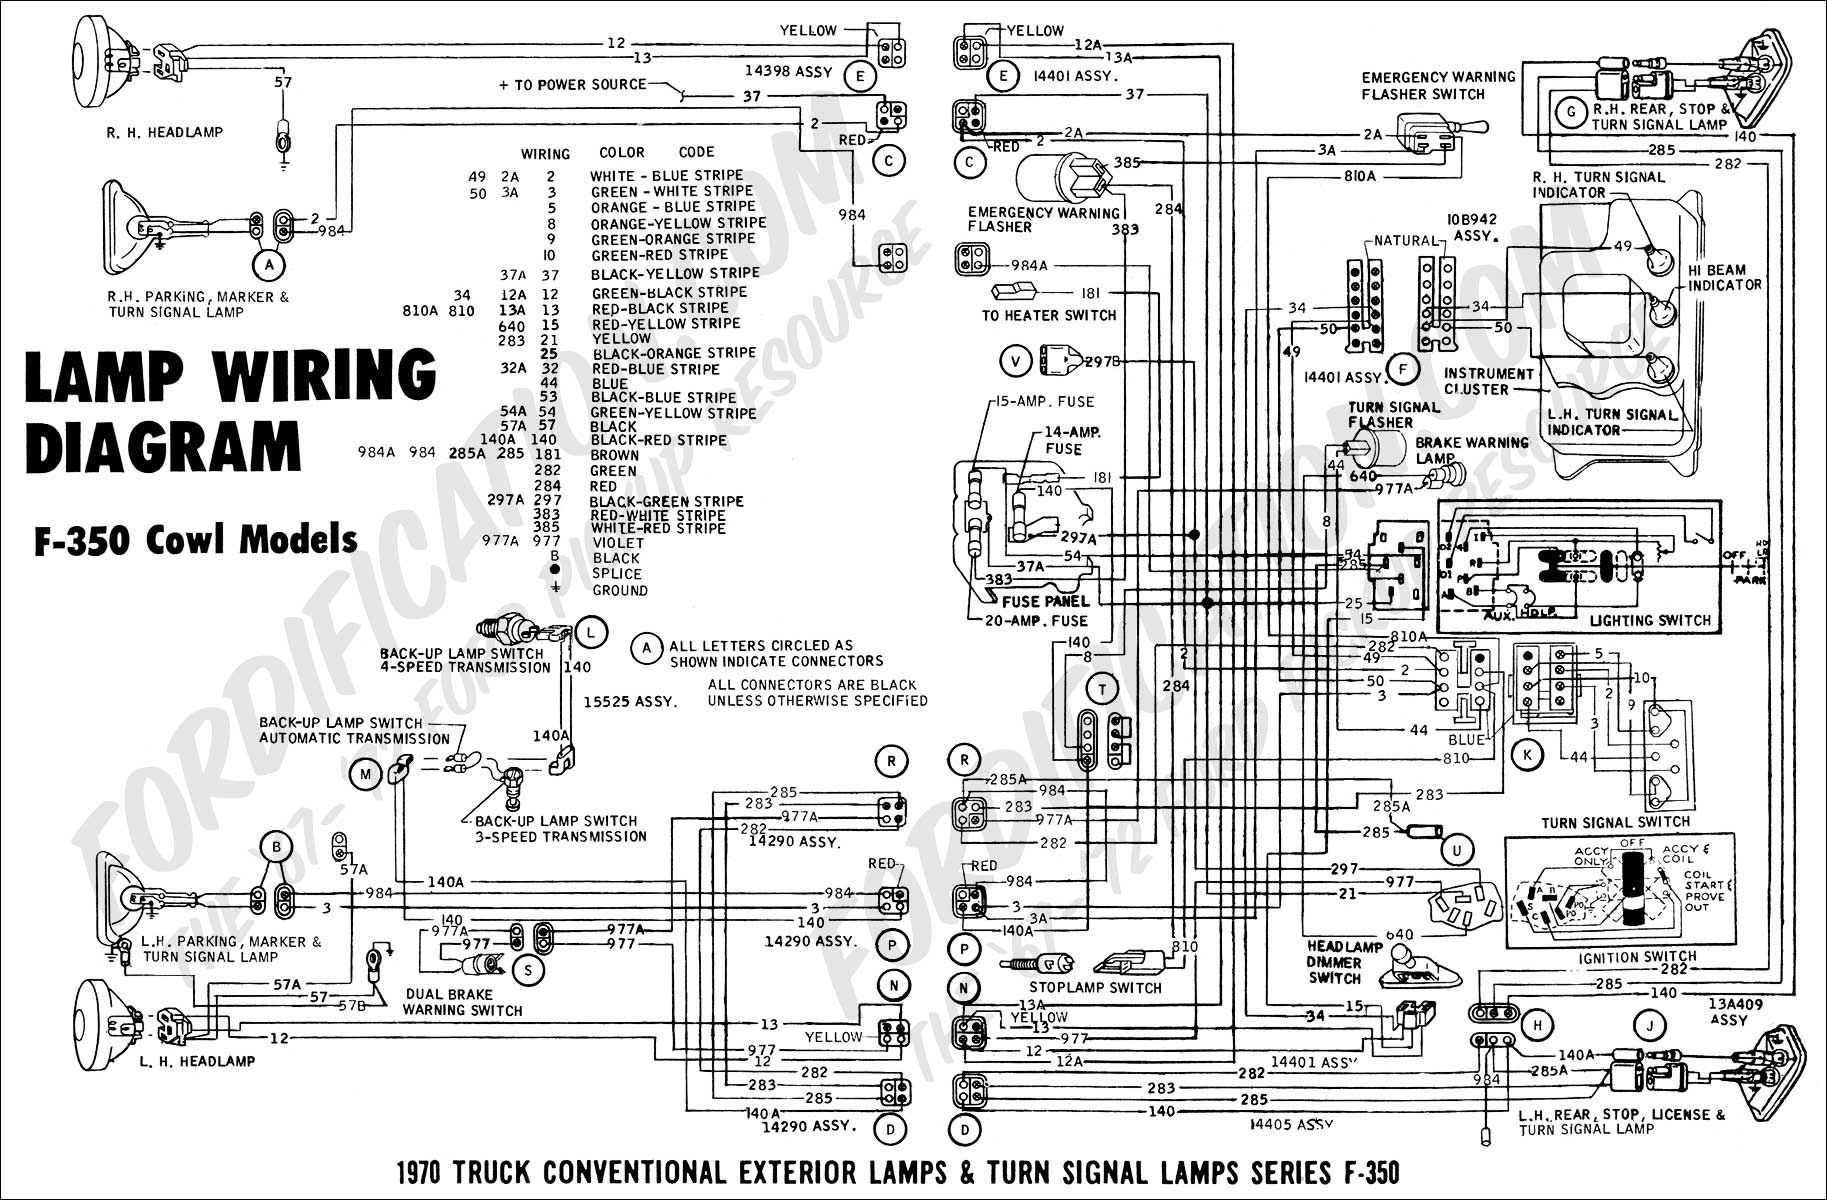 Image Ford Wiring Diagram 91 F350 Wiring Online Wiring Diagram1991 Ford F 350 Wiring Diagram 2 2 Electrical Diagram Thermostat Wiring Electrical Wiring Diagram